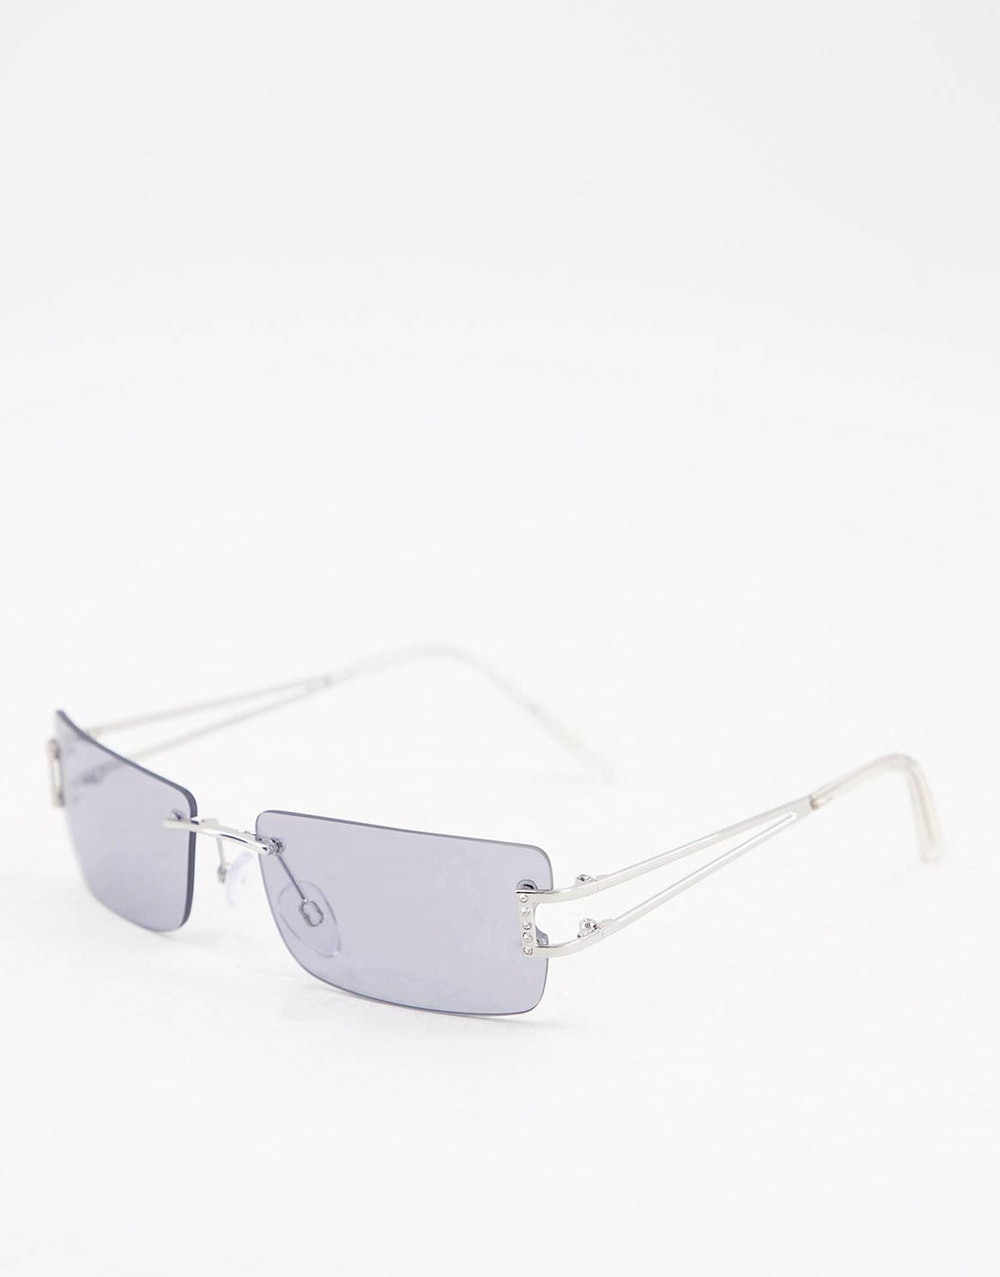 Rimless '90s Square Sunglasses With Diamante Side Cut Out Detail In Silver